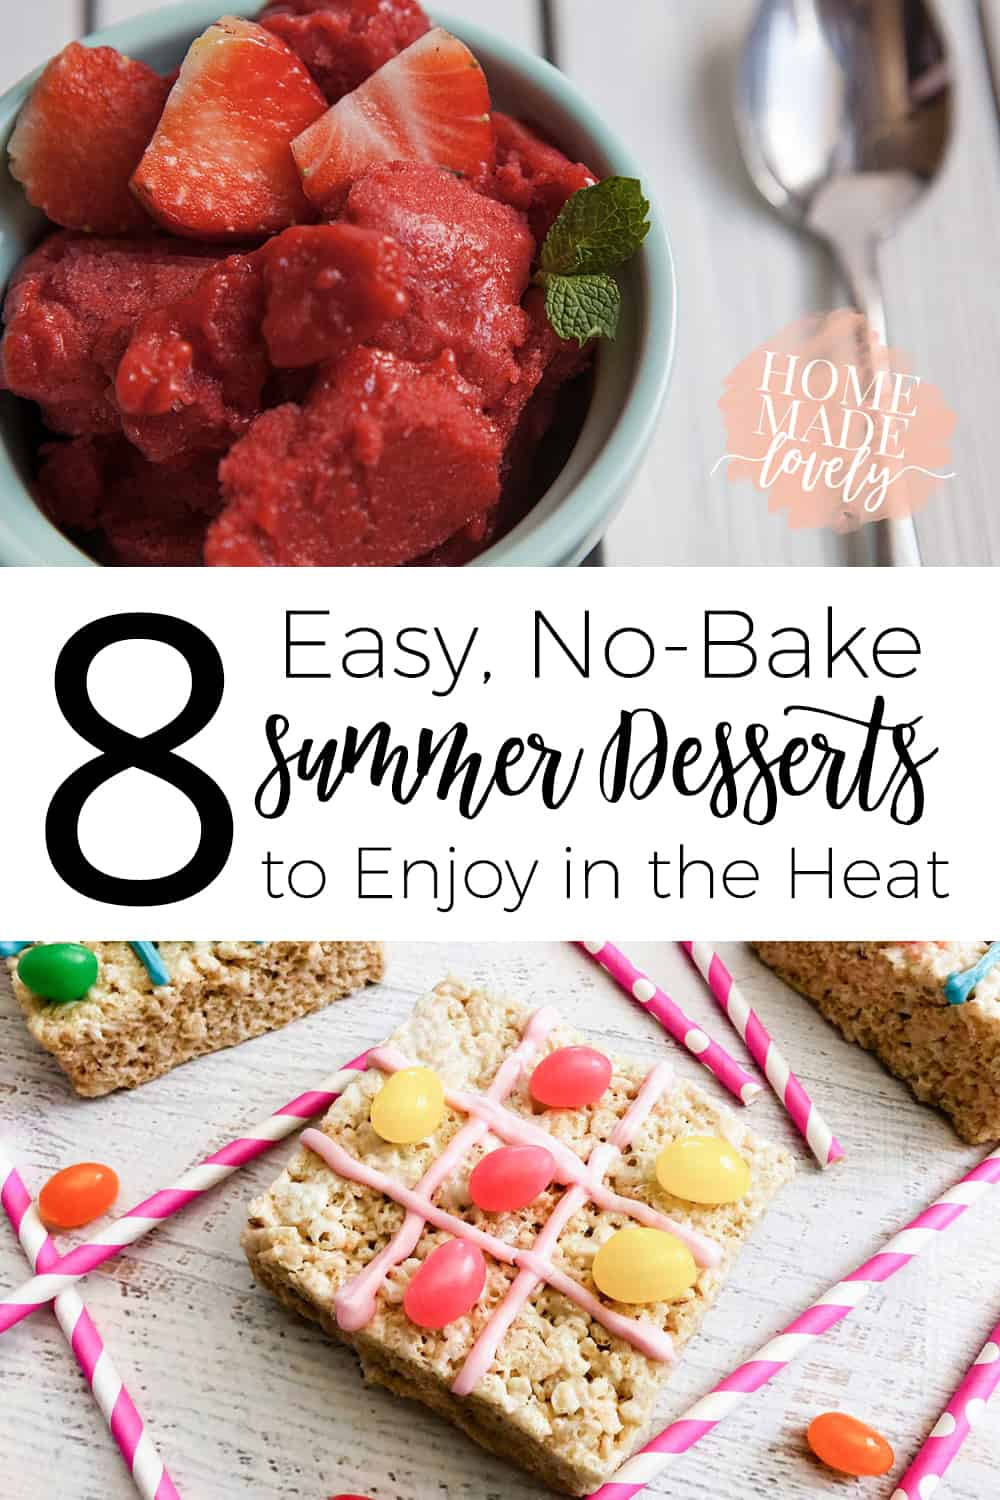 Got a craving for something sweet, but don't want to turn on the oven in the sweltering heat? Try one (or all) of these 8 easy, no-bake summer desserts and satisfy your sweet cravings without heating up the house. Easy sorbets, chocolate pudding, chocolate dipped fruit and more easy, no-bake summer desserts.